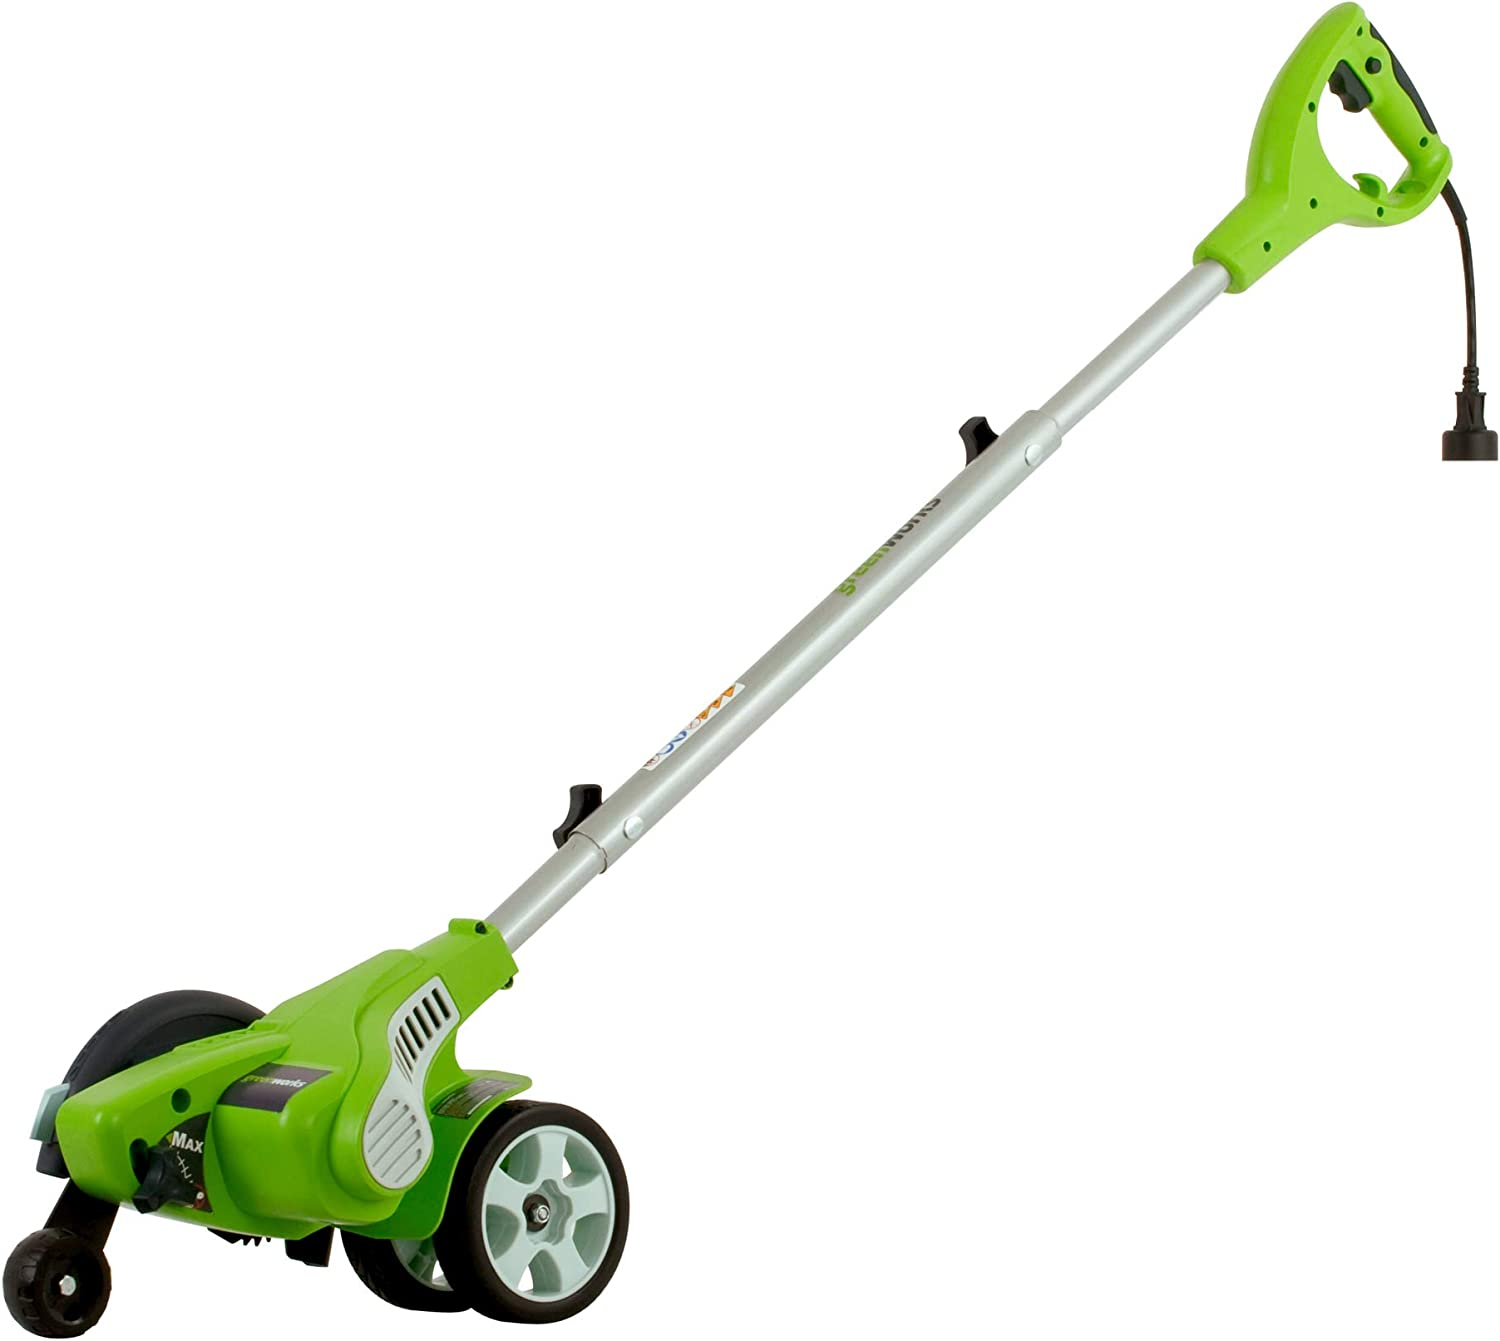 GreenWorks 12 Amp Corded Edger